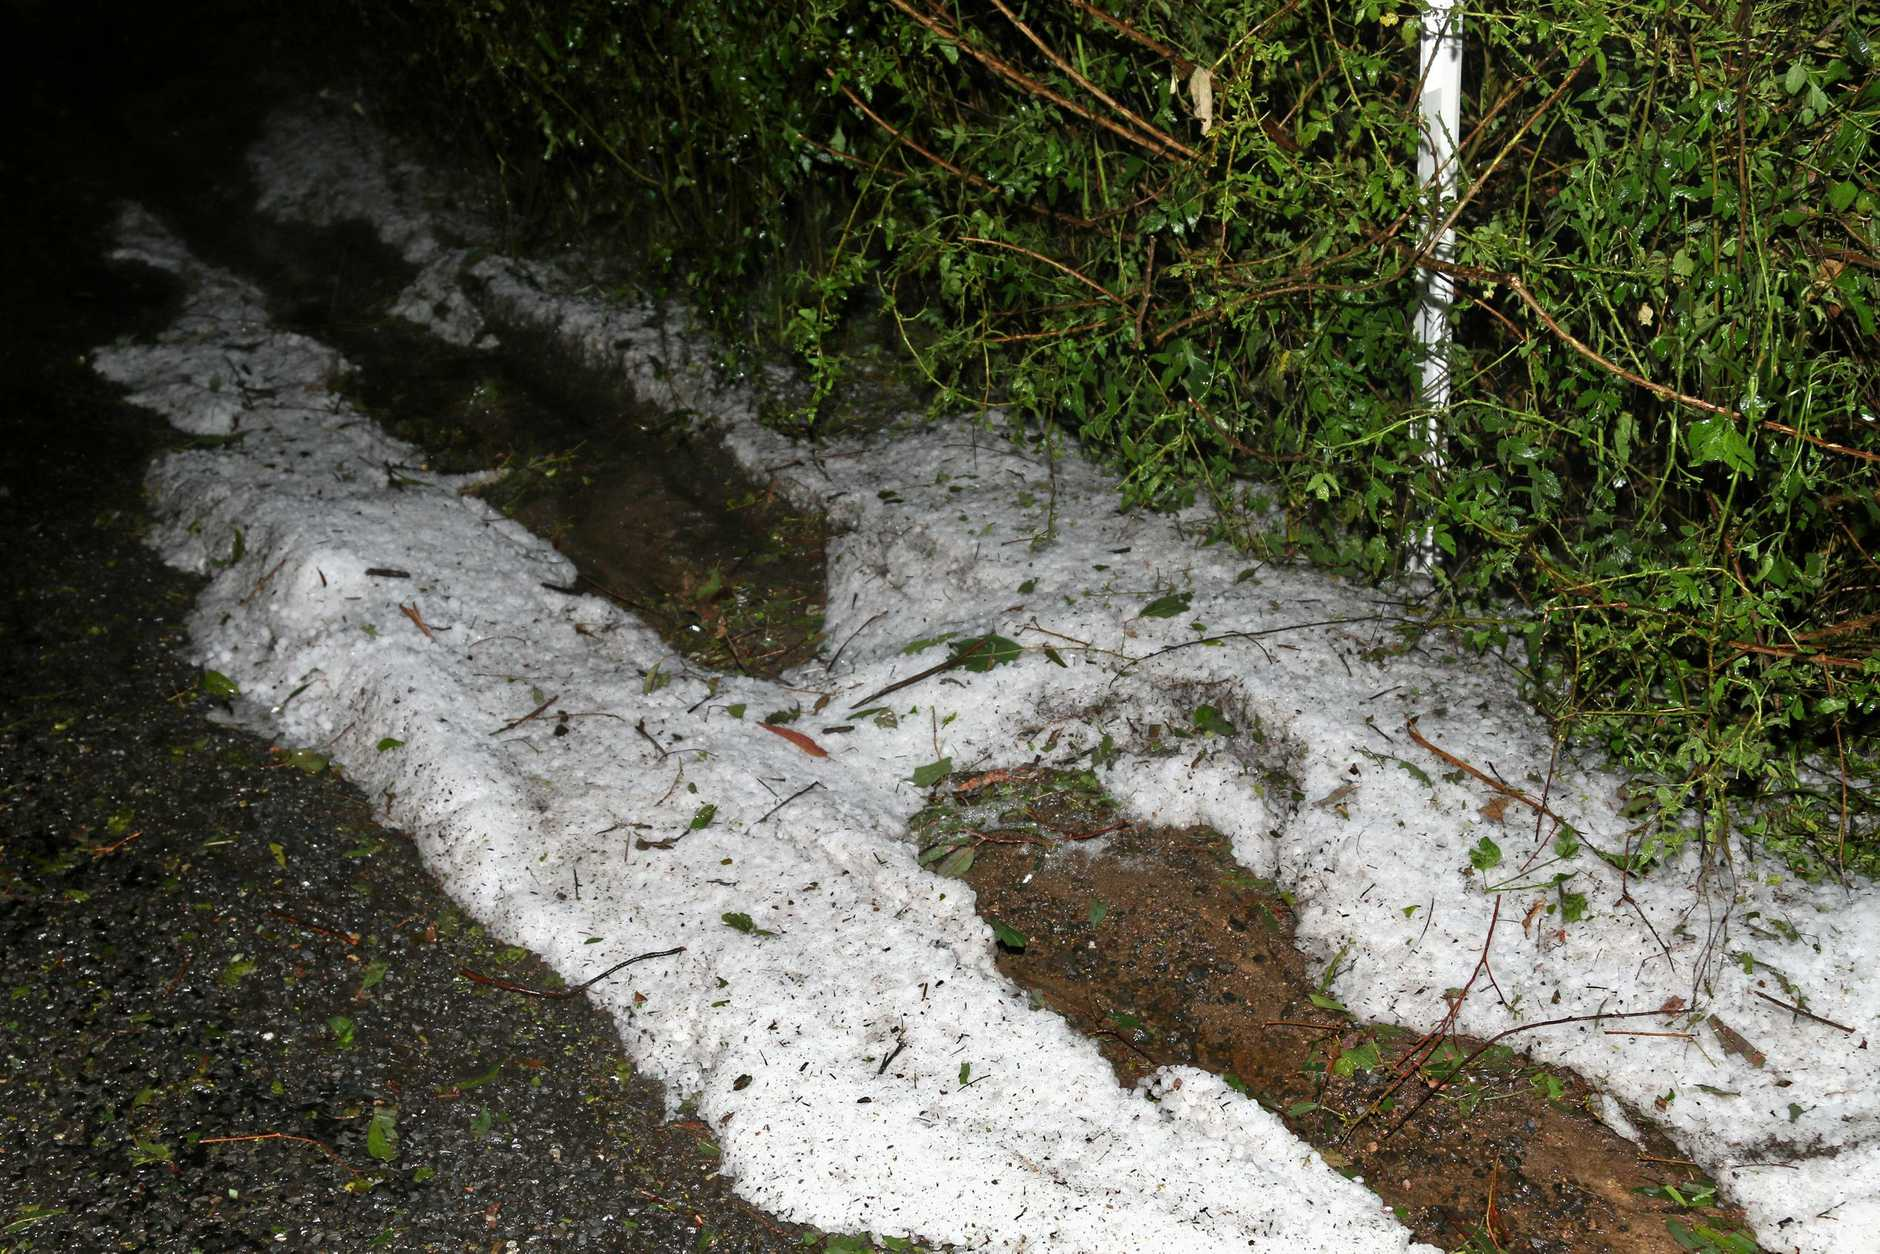 Hail pelted down at Killarney, leaving a blanket of ice so thick it looked like snow.